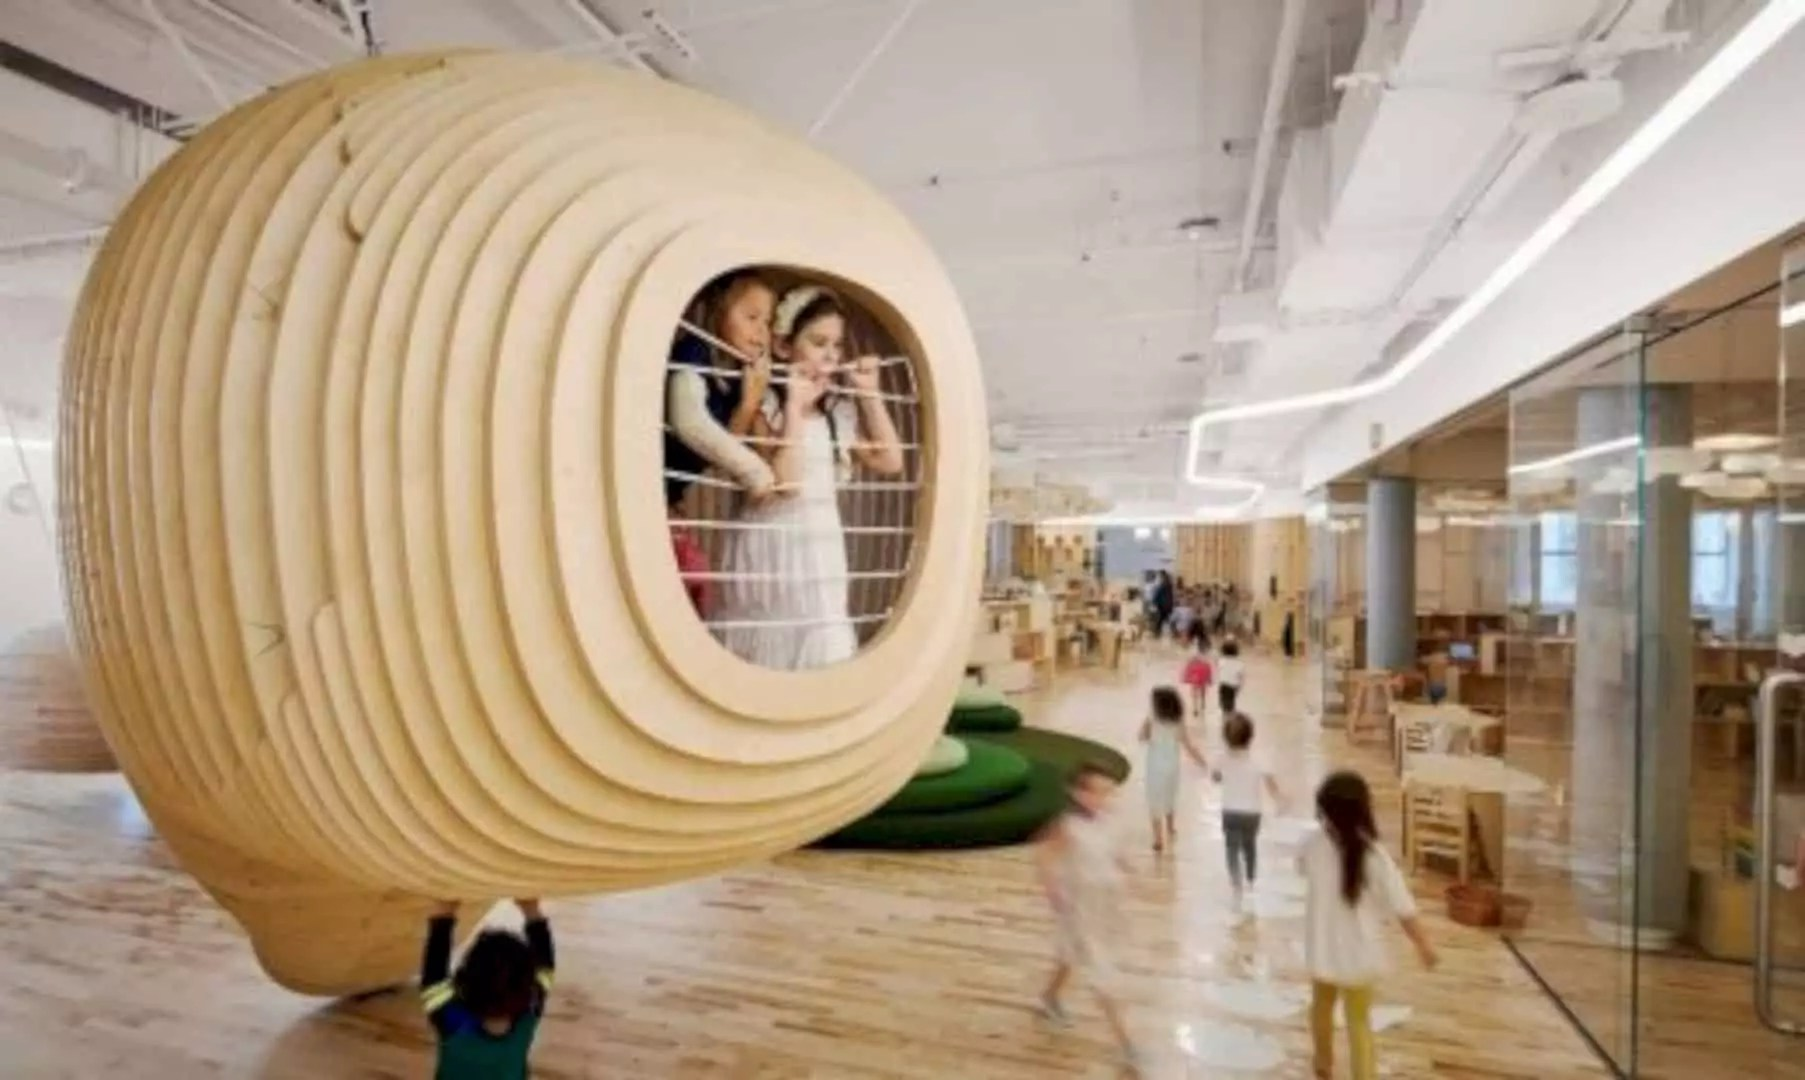 WeGrow School: Modern Interior of New Educational Facility with A Learning Landscape